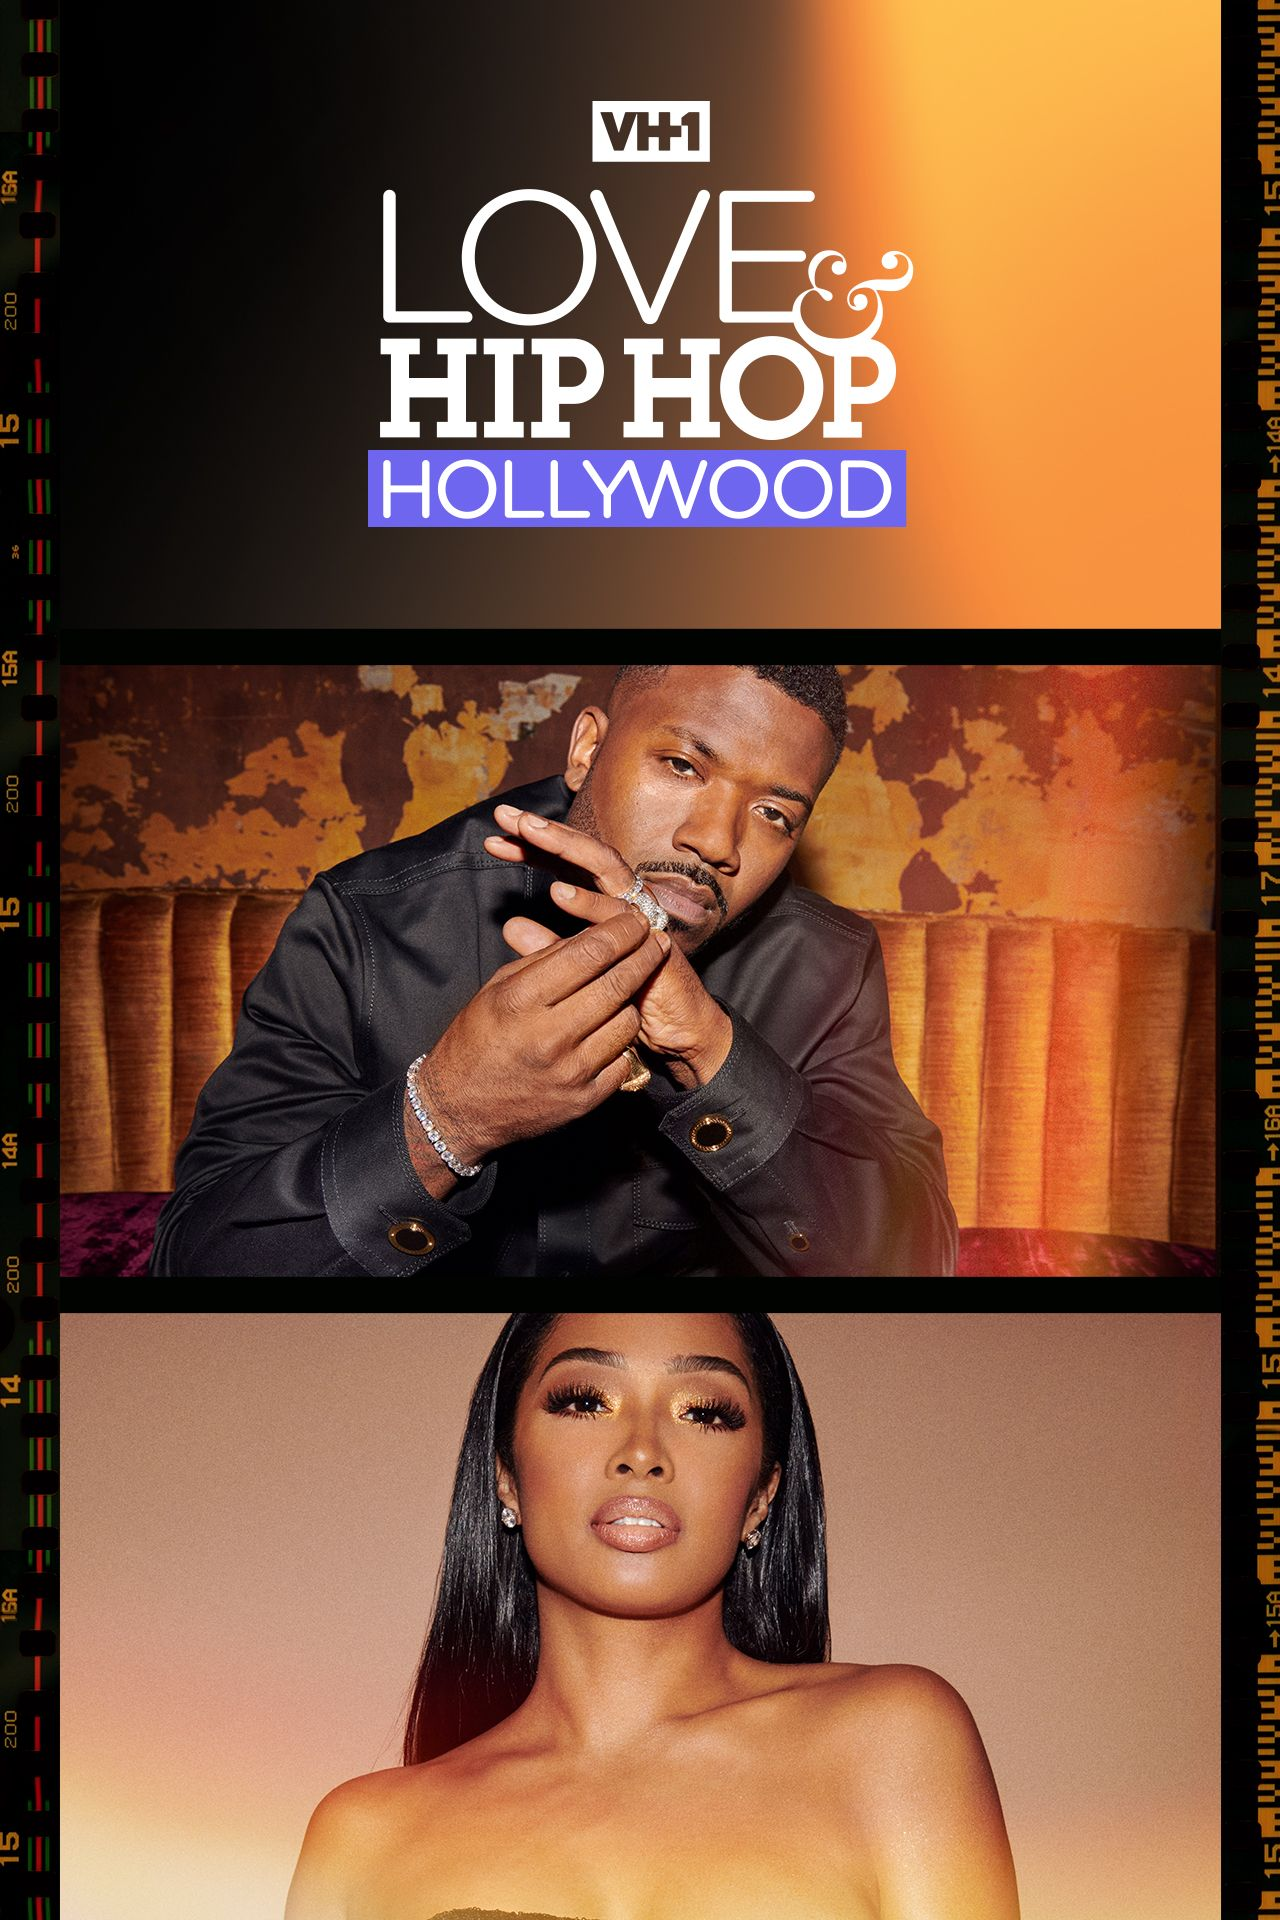 Amanda Rosa Play Boy love & hip hop hollywood tv series cast members | vh1